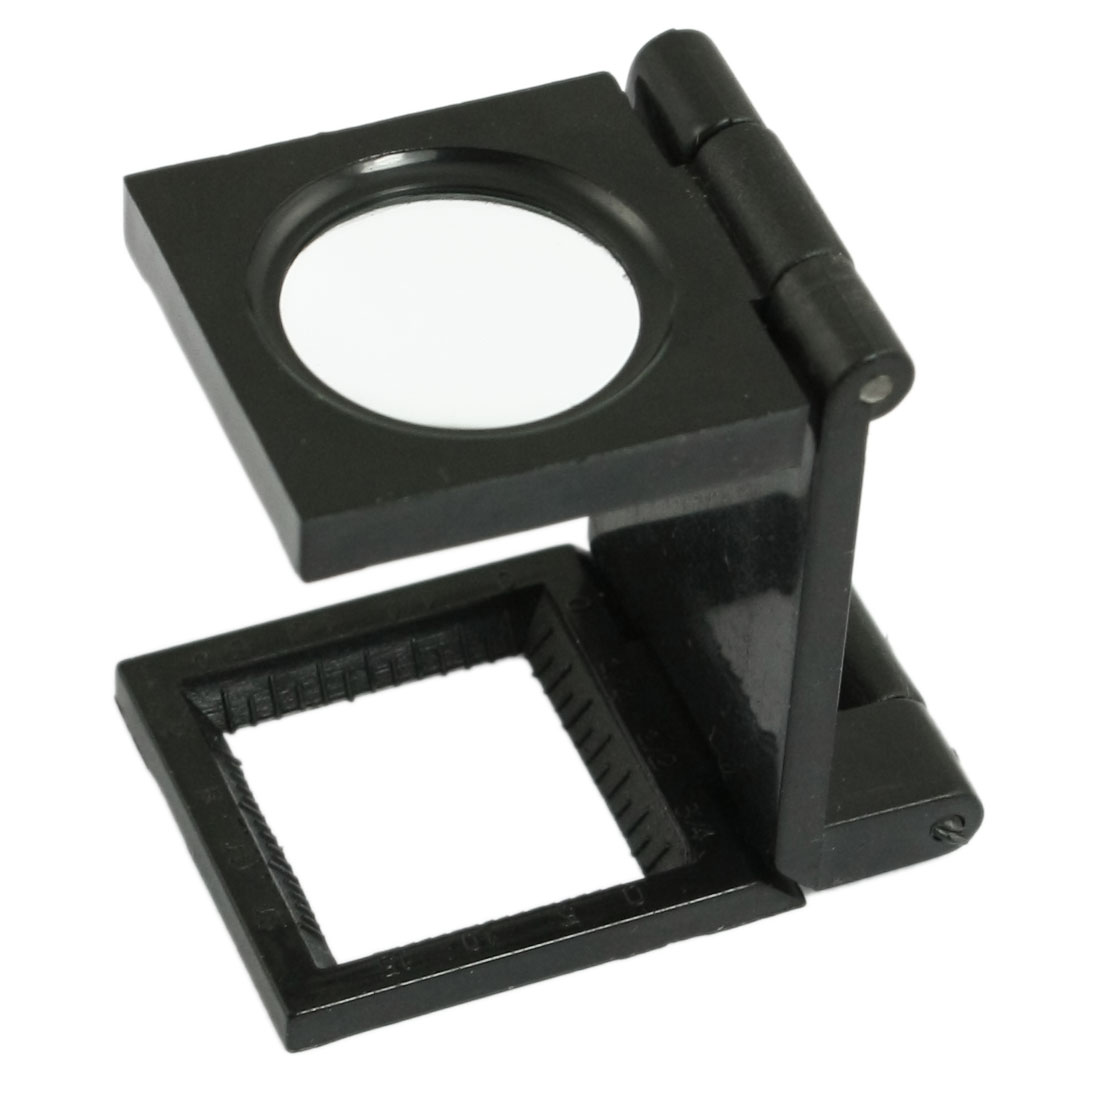 Black 1.5X Pocket Microscope Magnifier Magnifying Glass